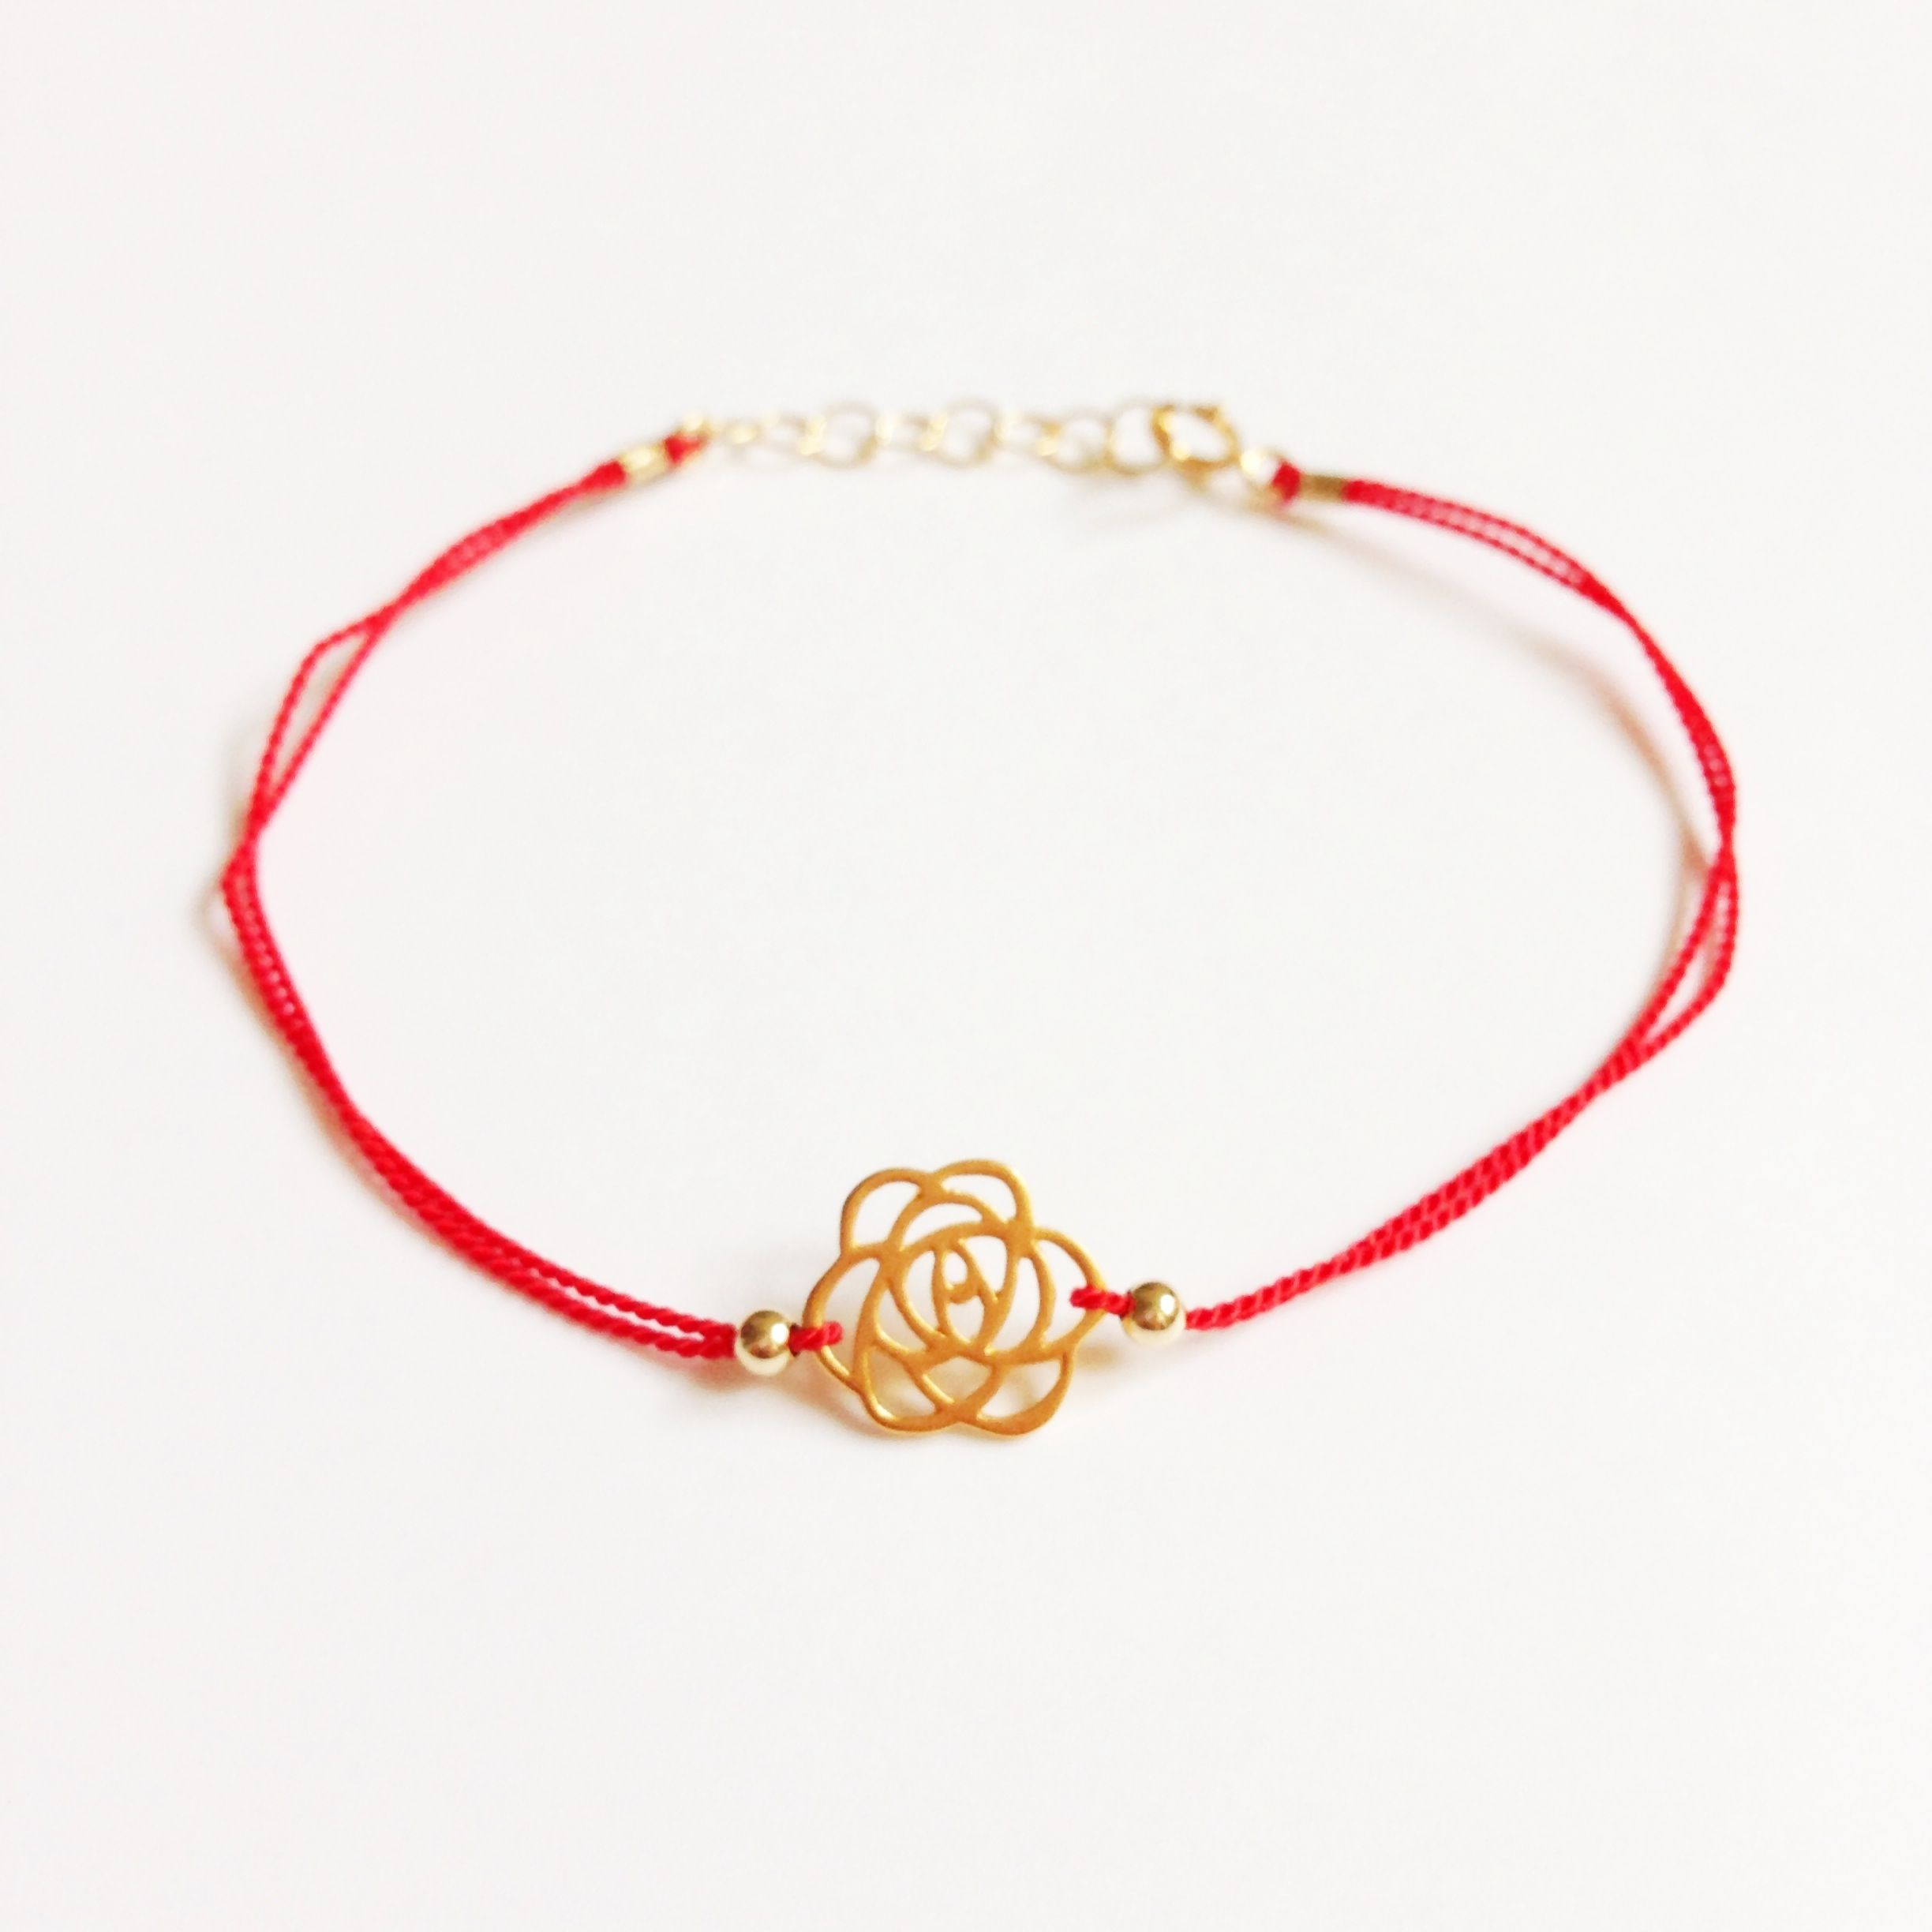 Gold fill rose charm strung on a strong nylon thread symbolizing